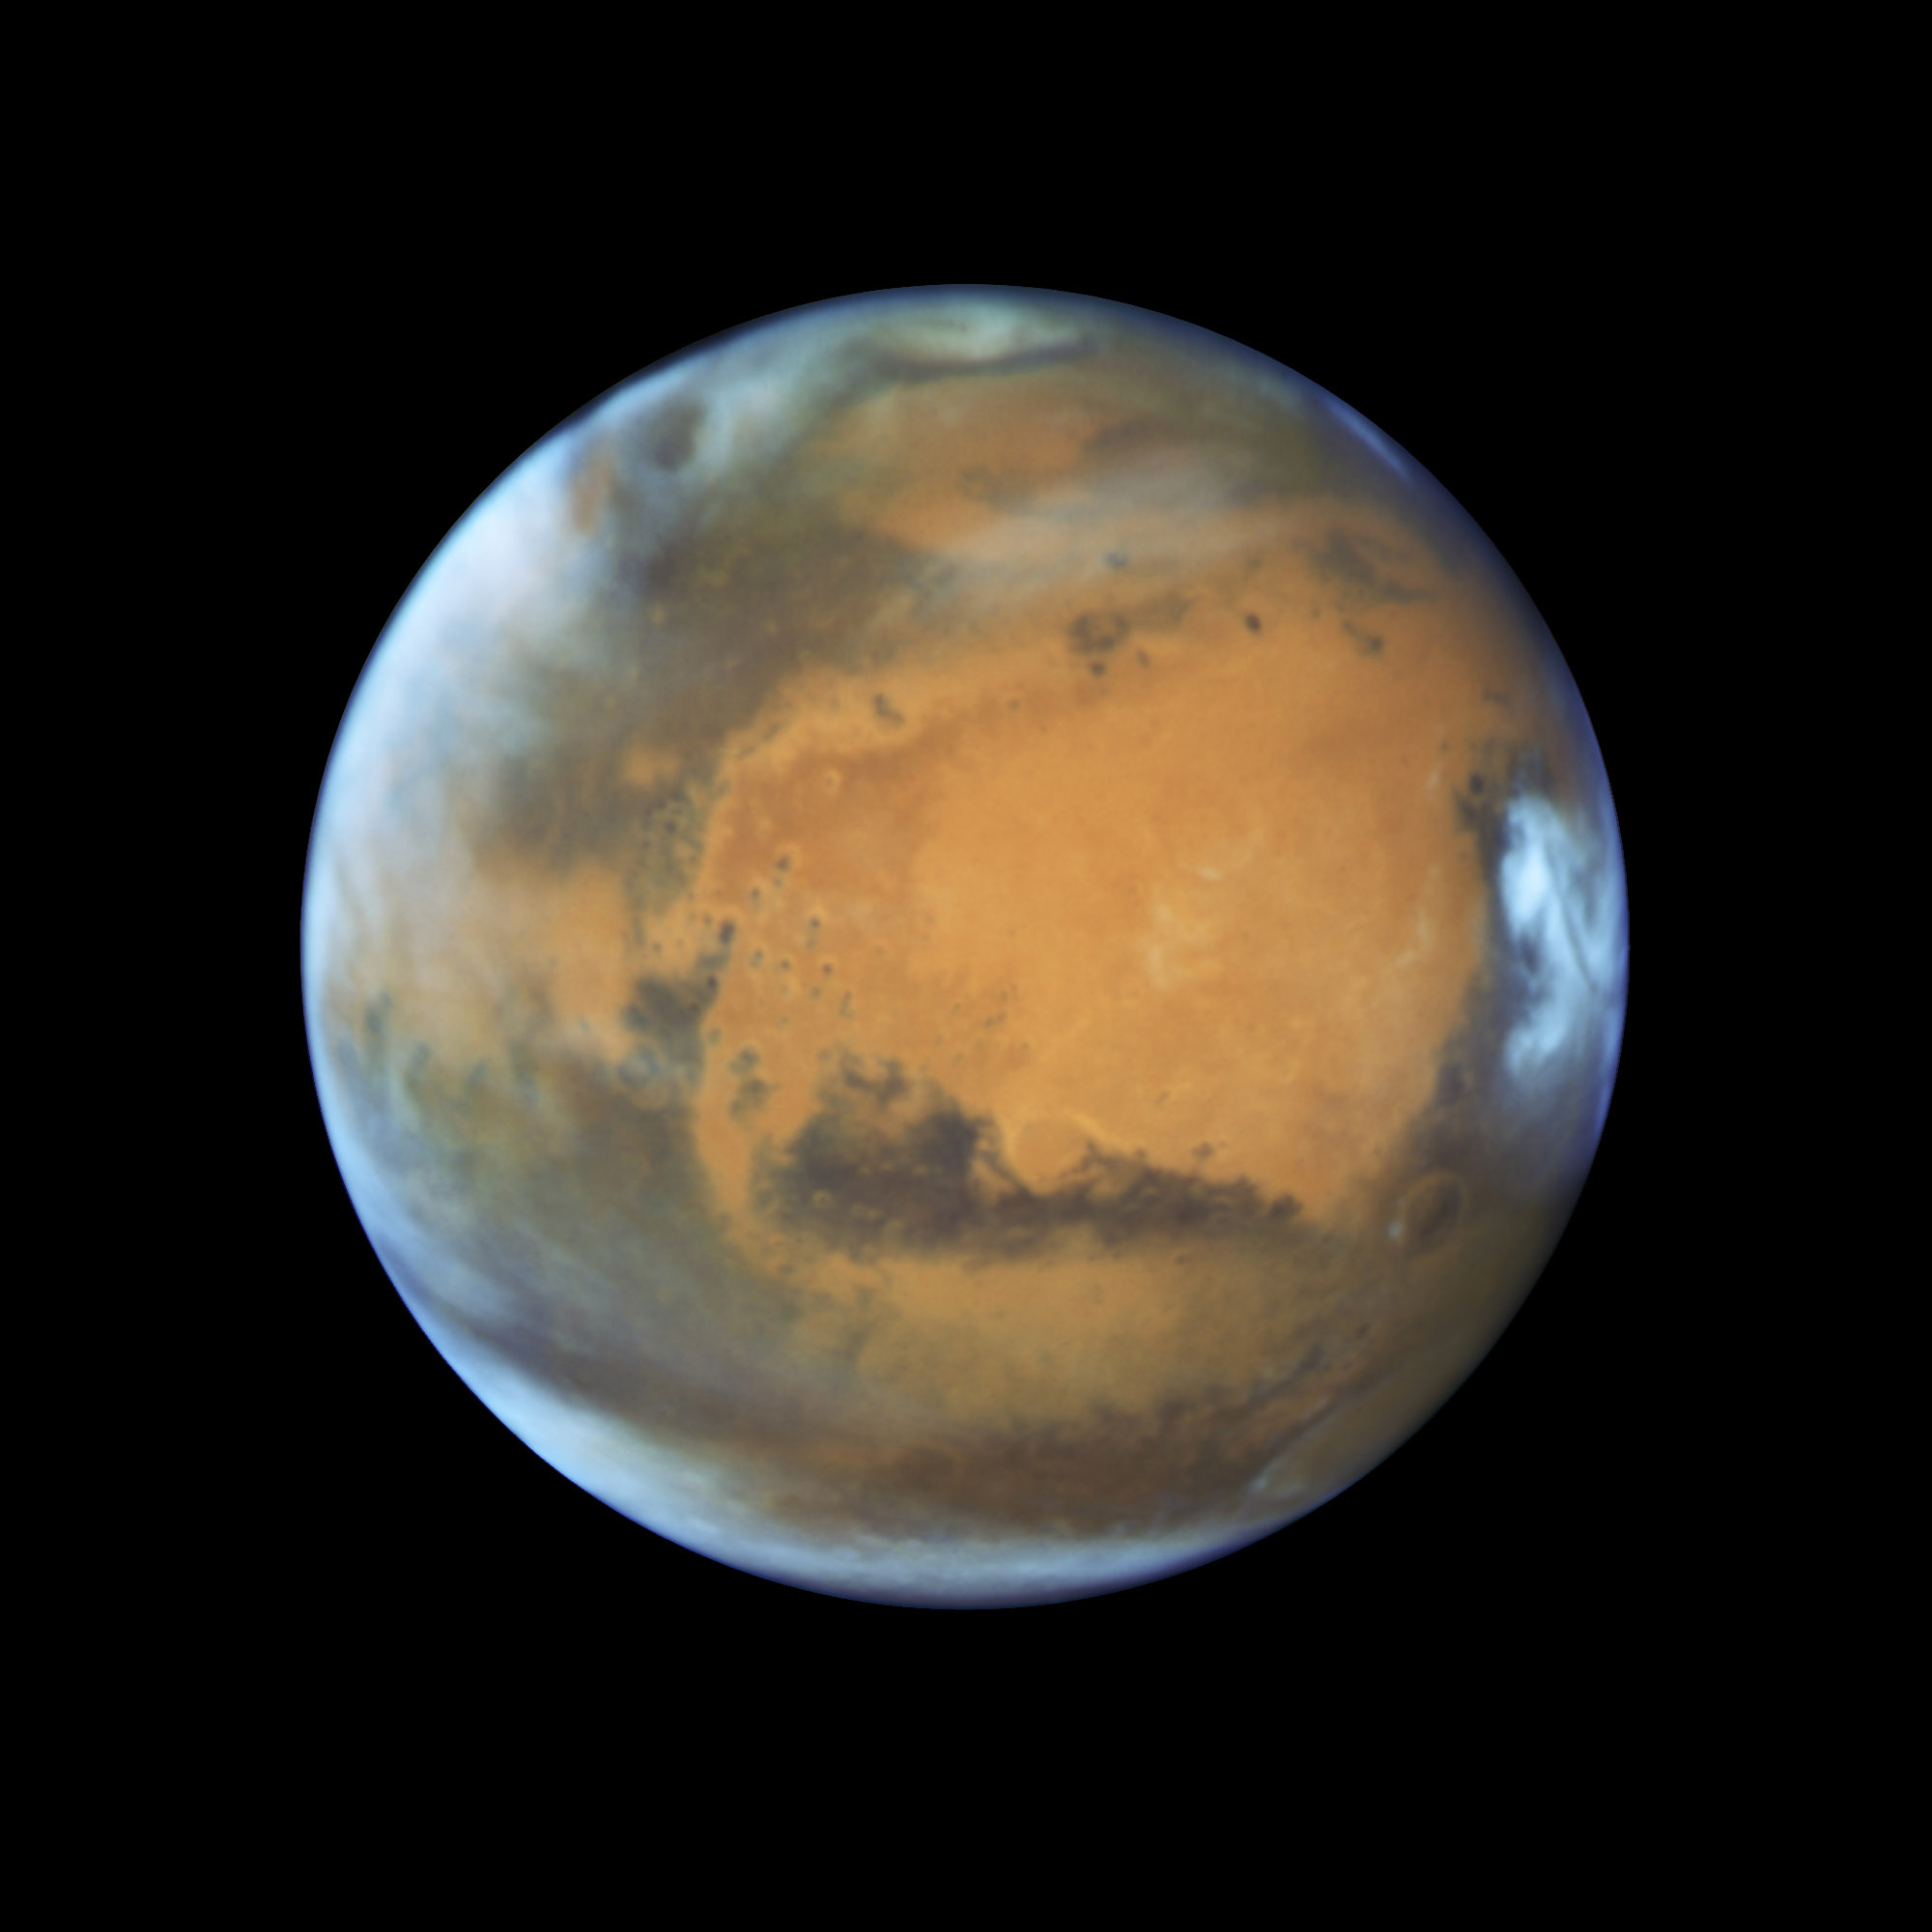 Bright, frosty polar caps, and clouds above a vivid, rust-colored landscape reveal Mars as a dynamic seasonal planet, May 12, 2016.